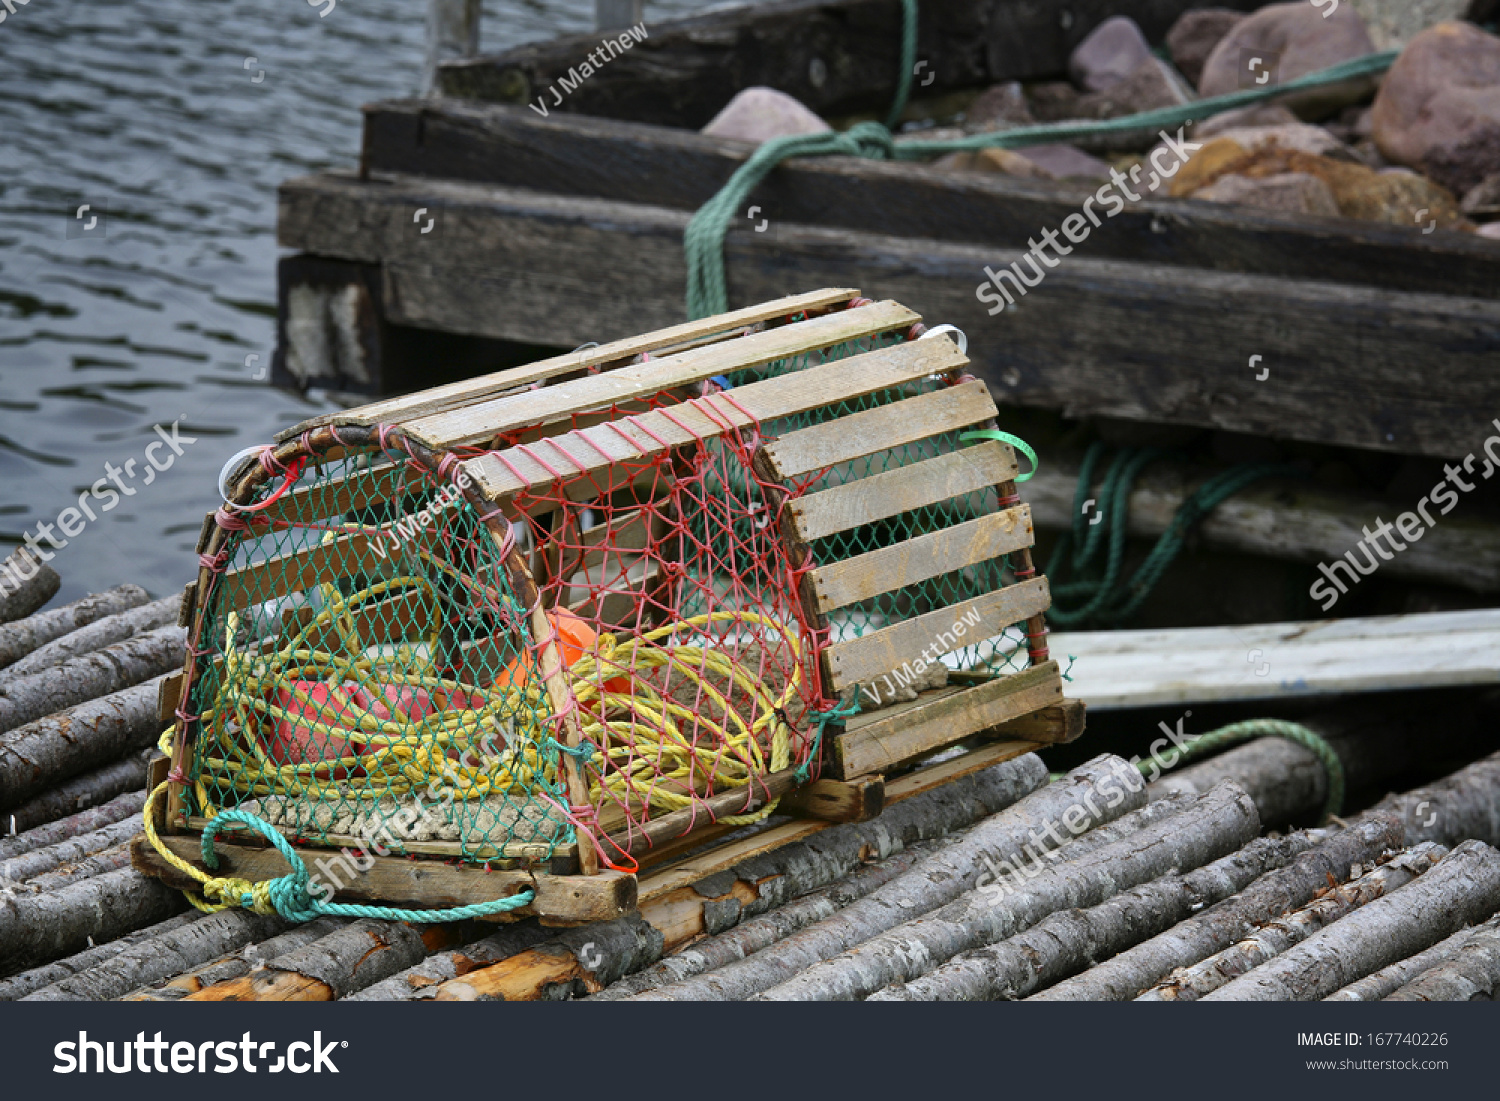 A Wooden Lobster Trap With Buoys And Rope On A Newfoundland, Canada Wharf. Stock Photo 167740226 ...